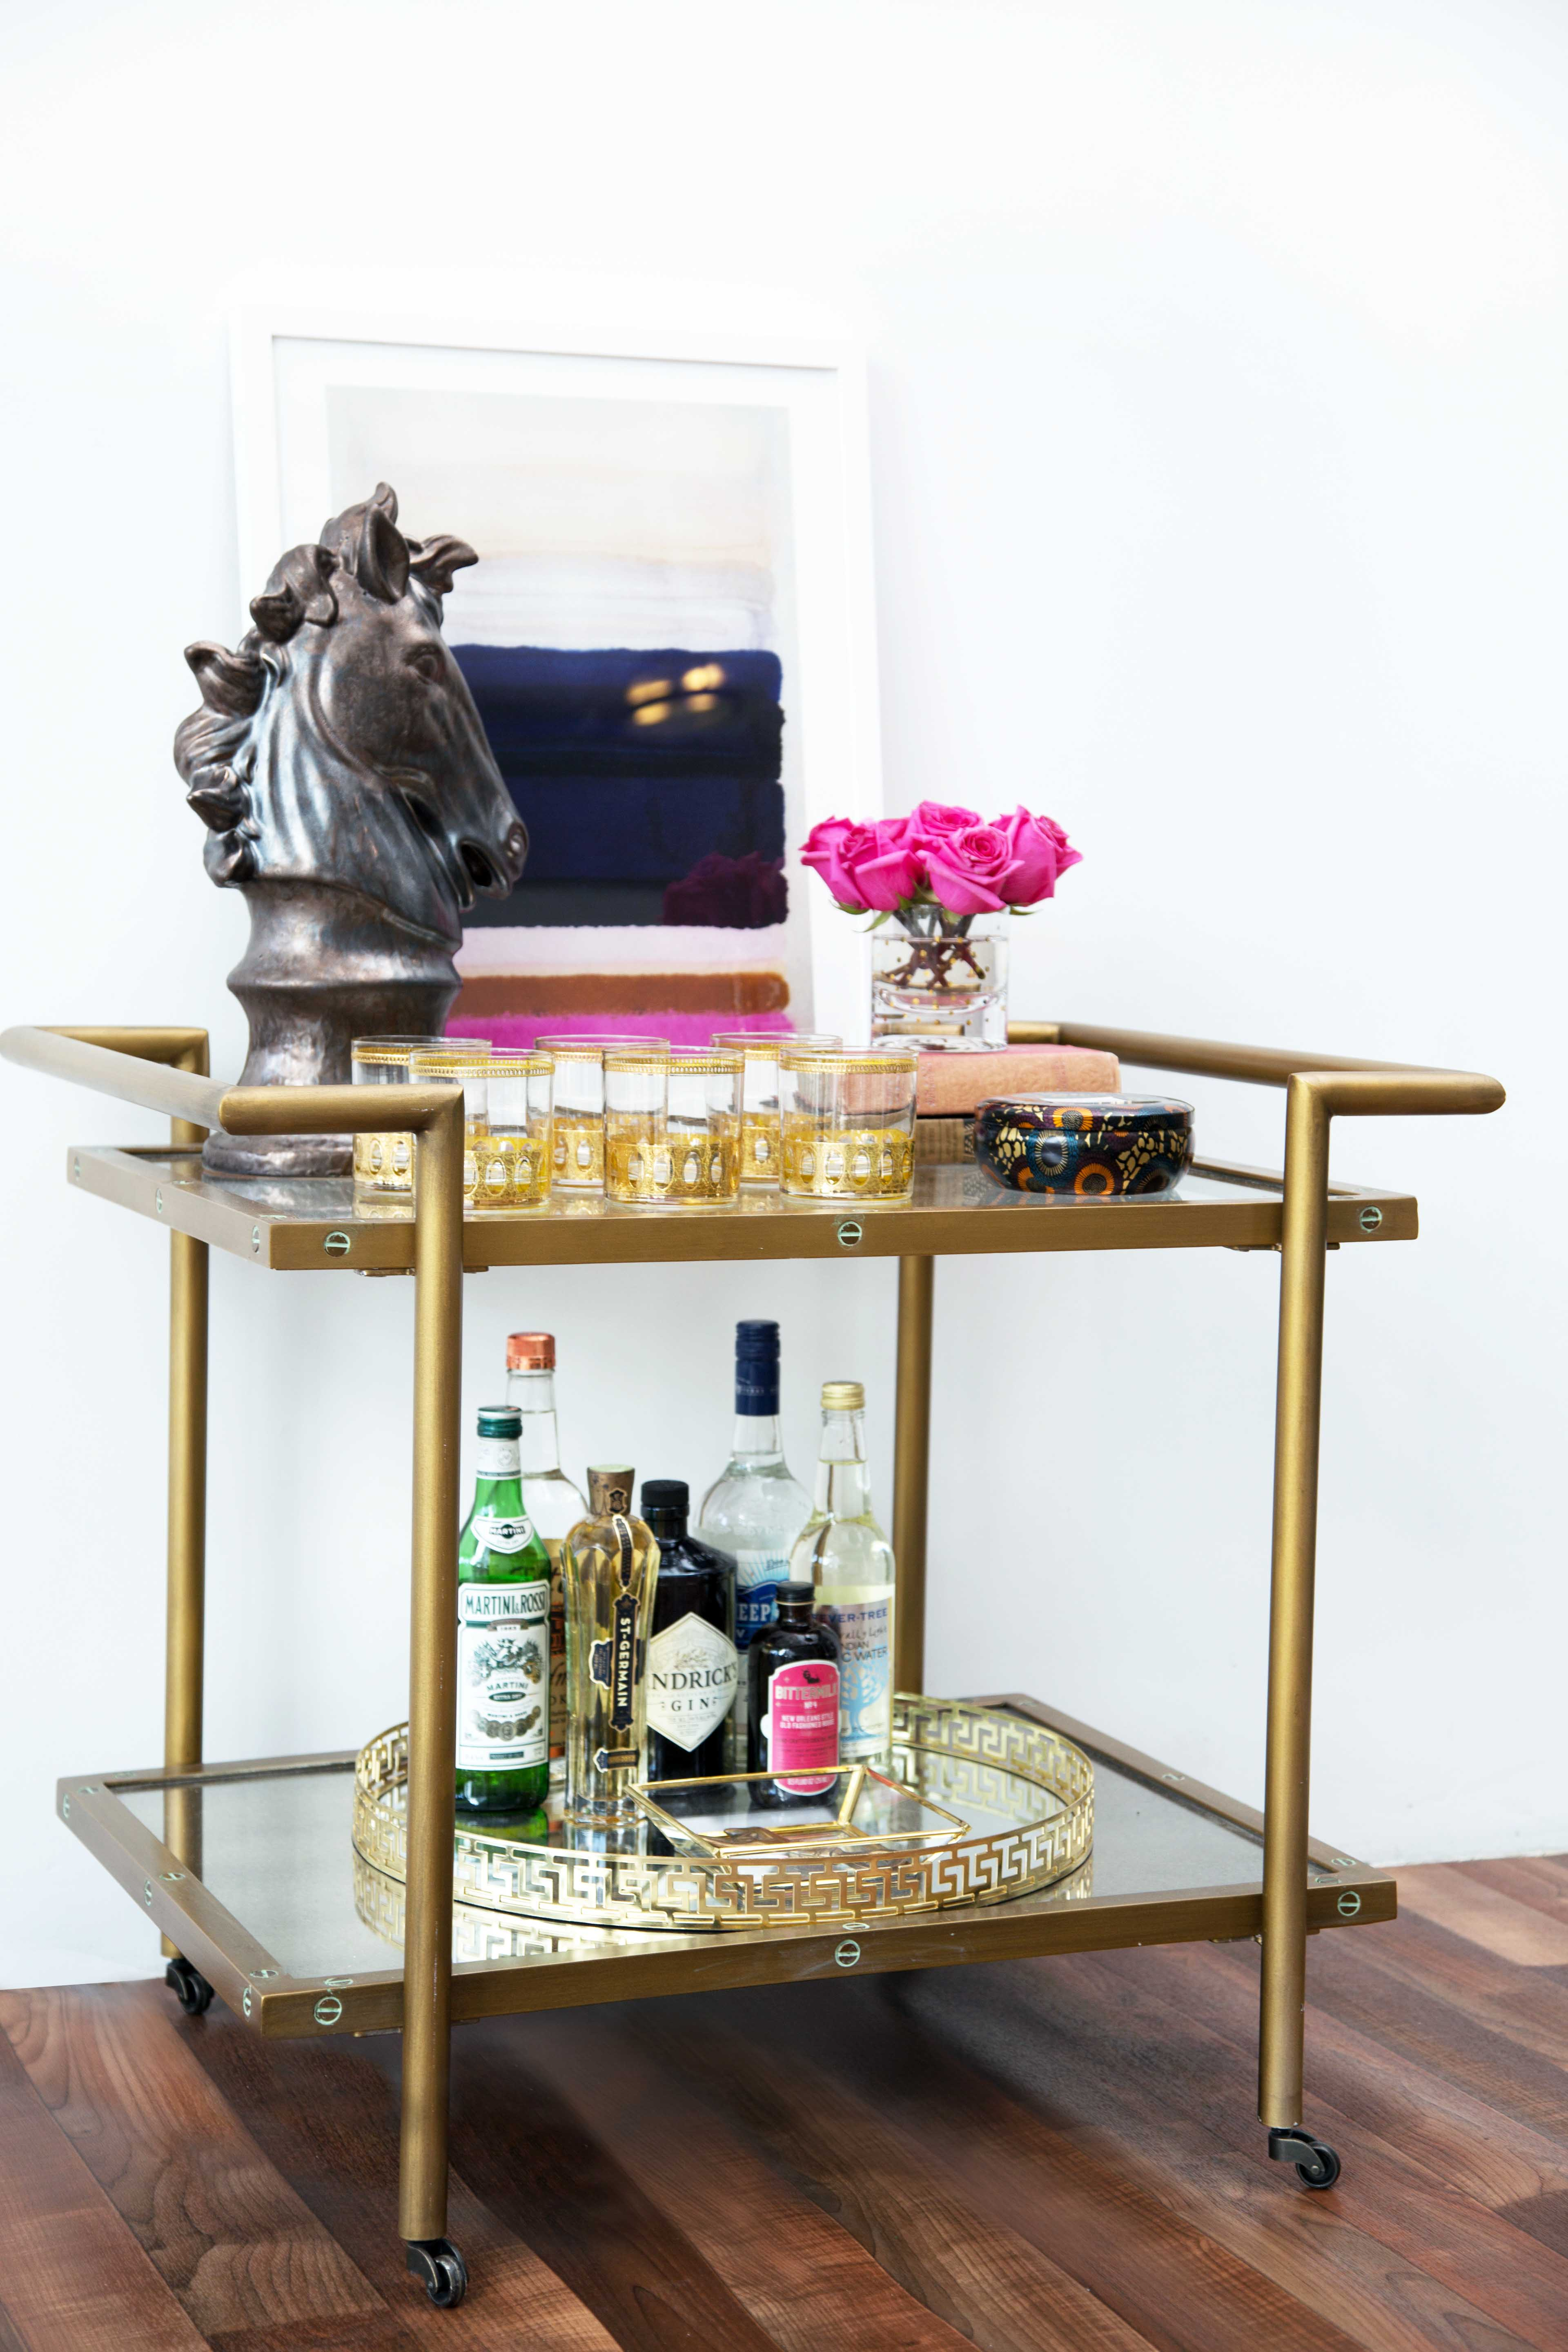 Excellent bar carts for bar furniture ideas with gold bar cart and diy bar cart